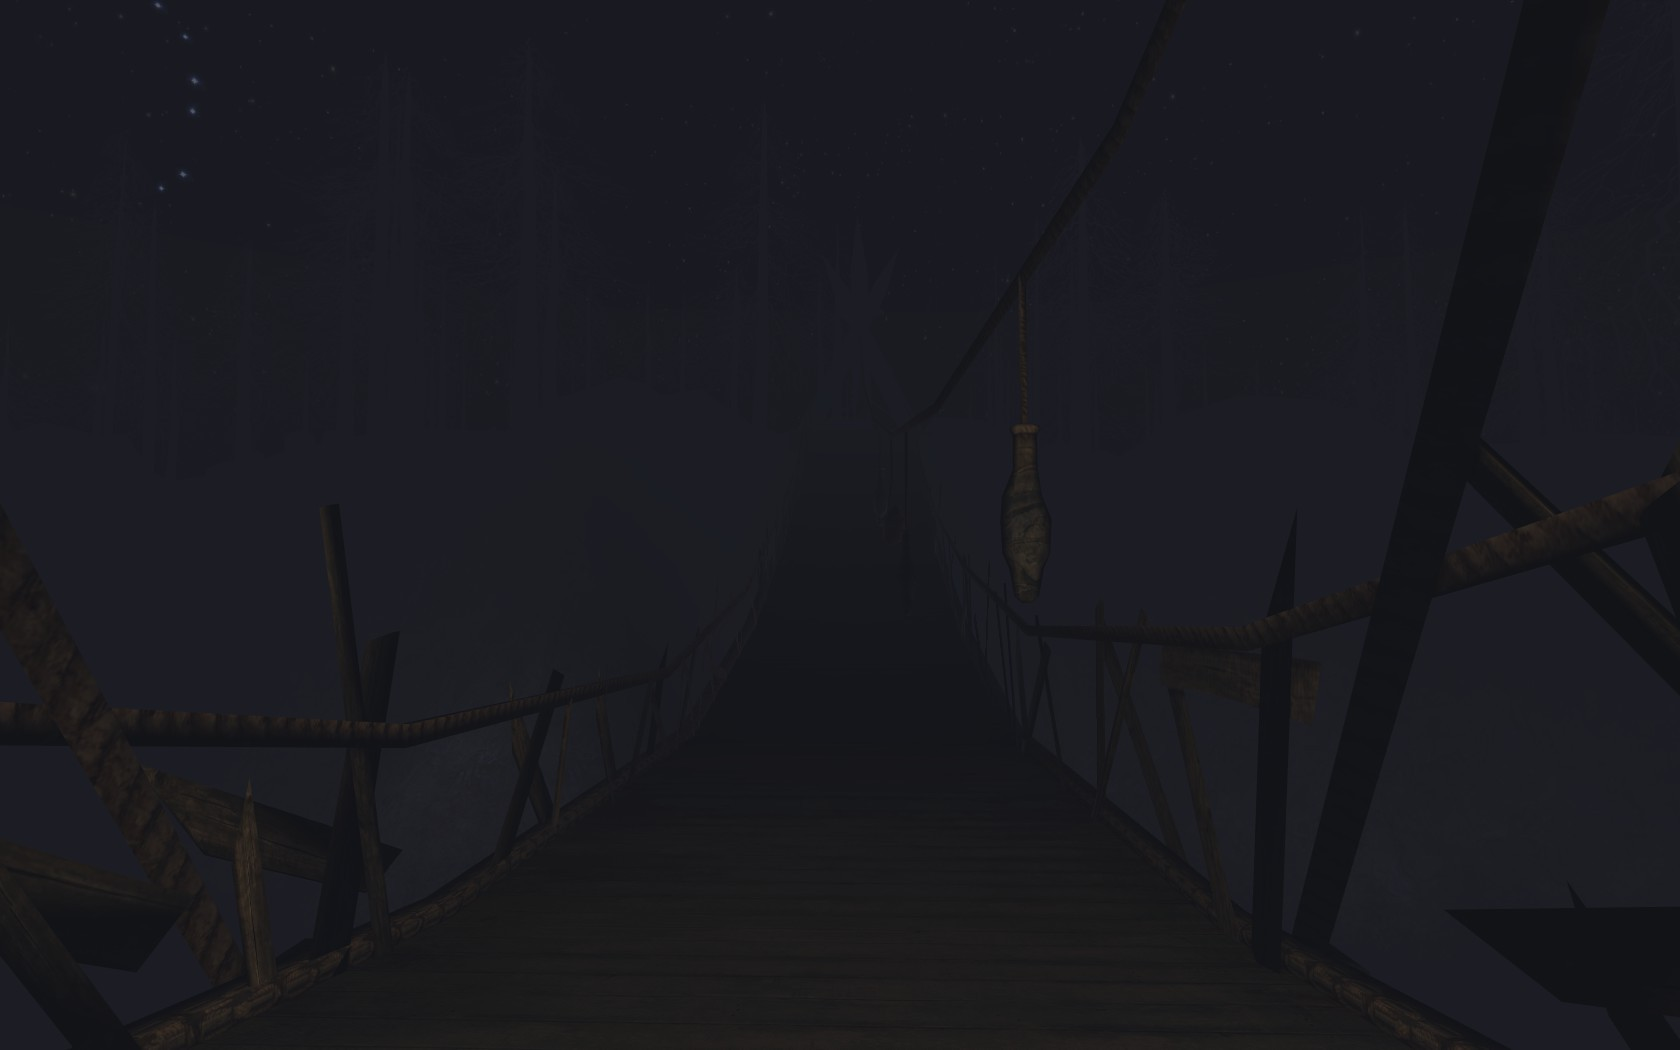 Lord of the Rings Online - What kind of Evil lies at the end of the bridge?